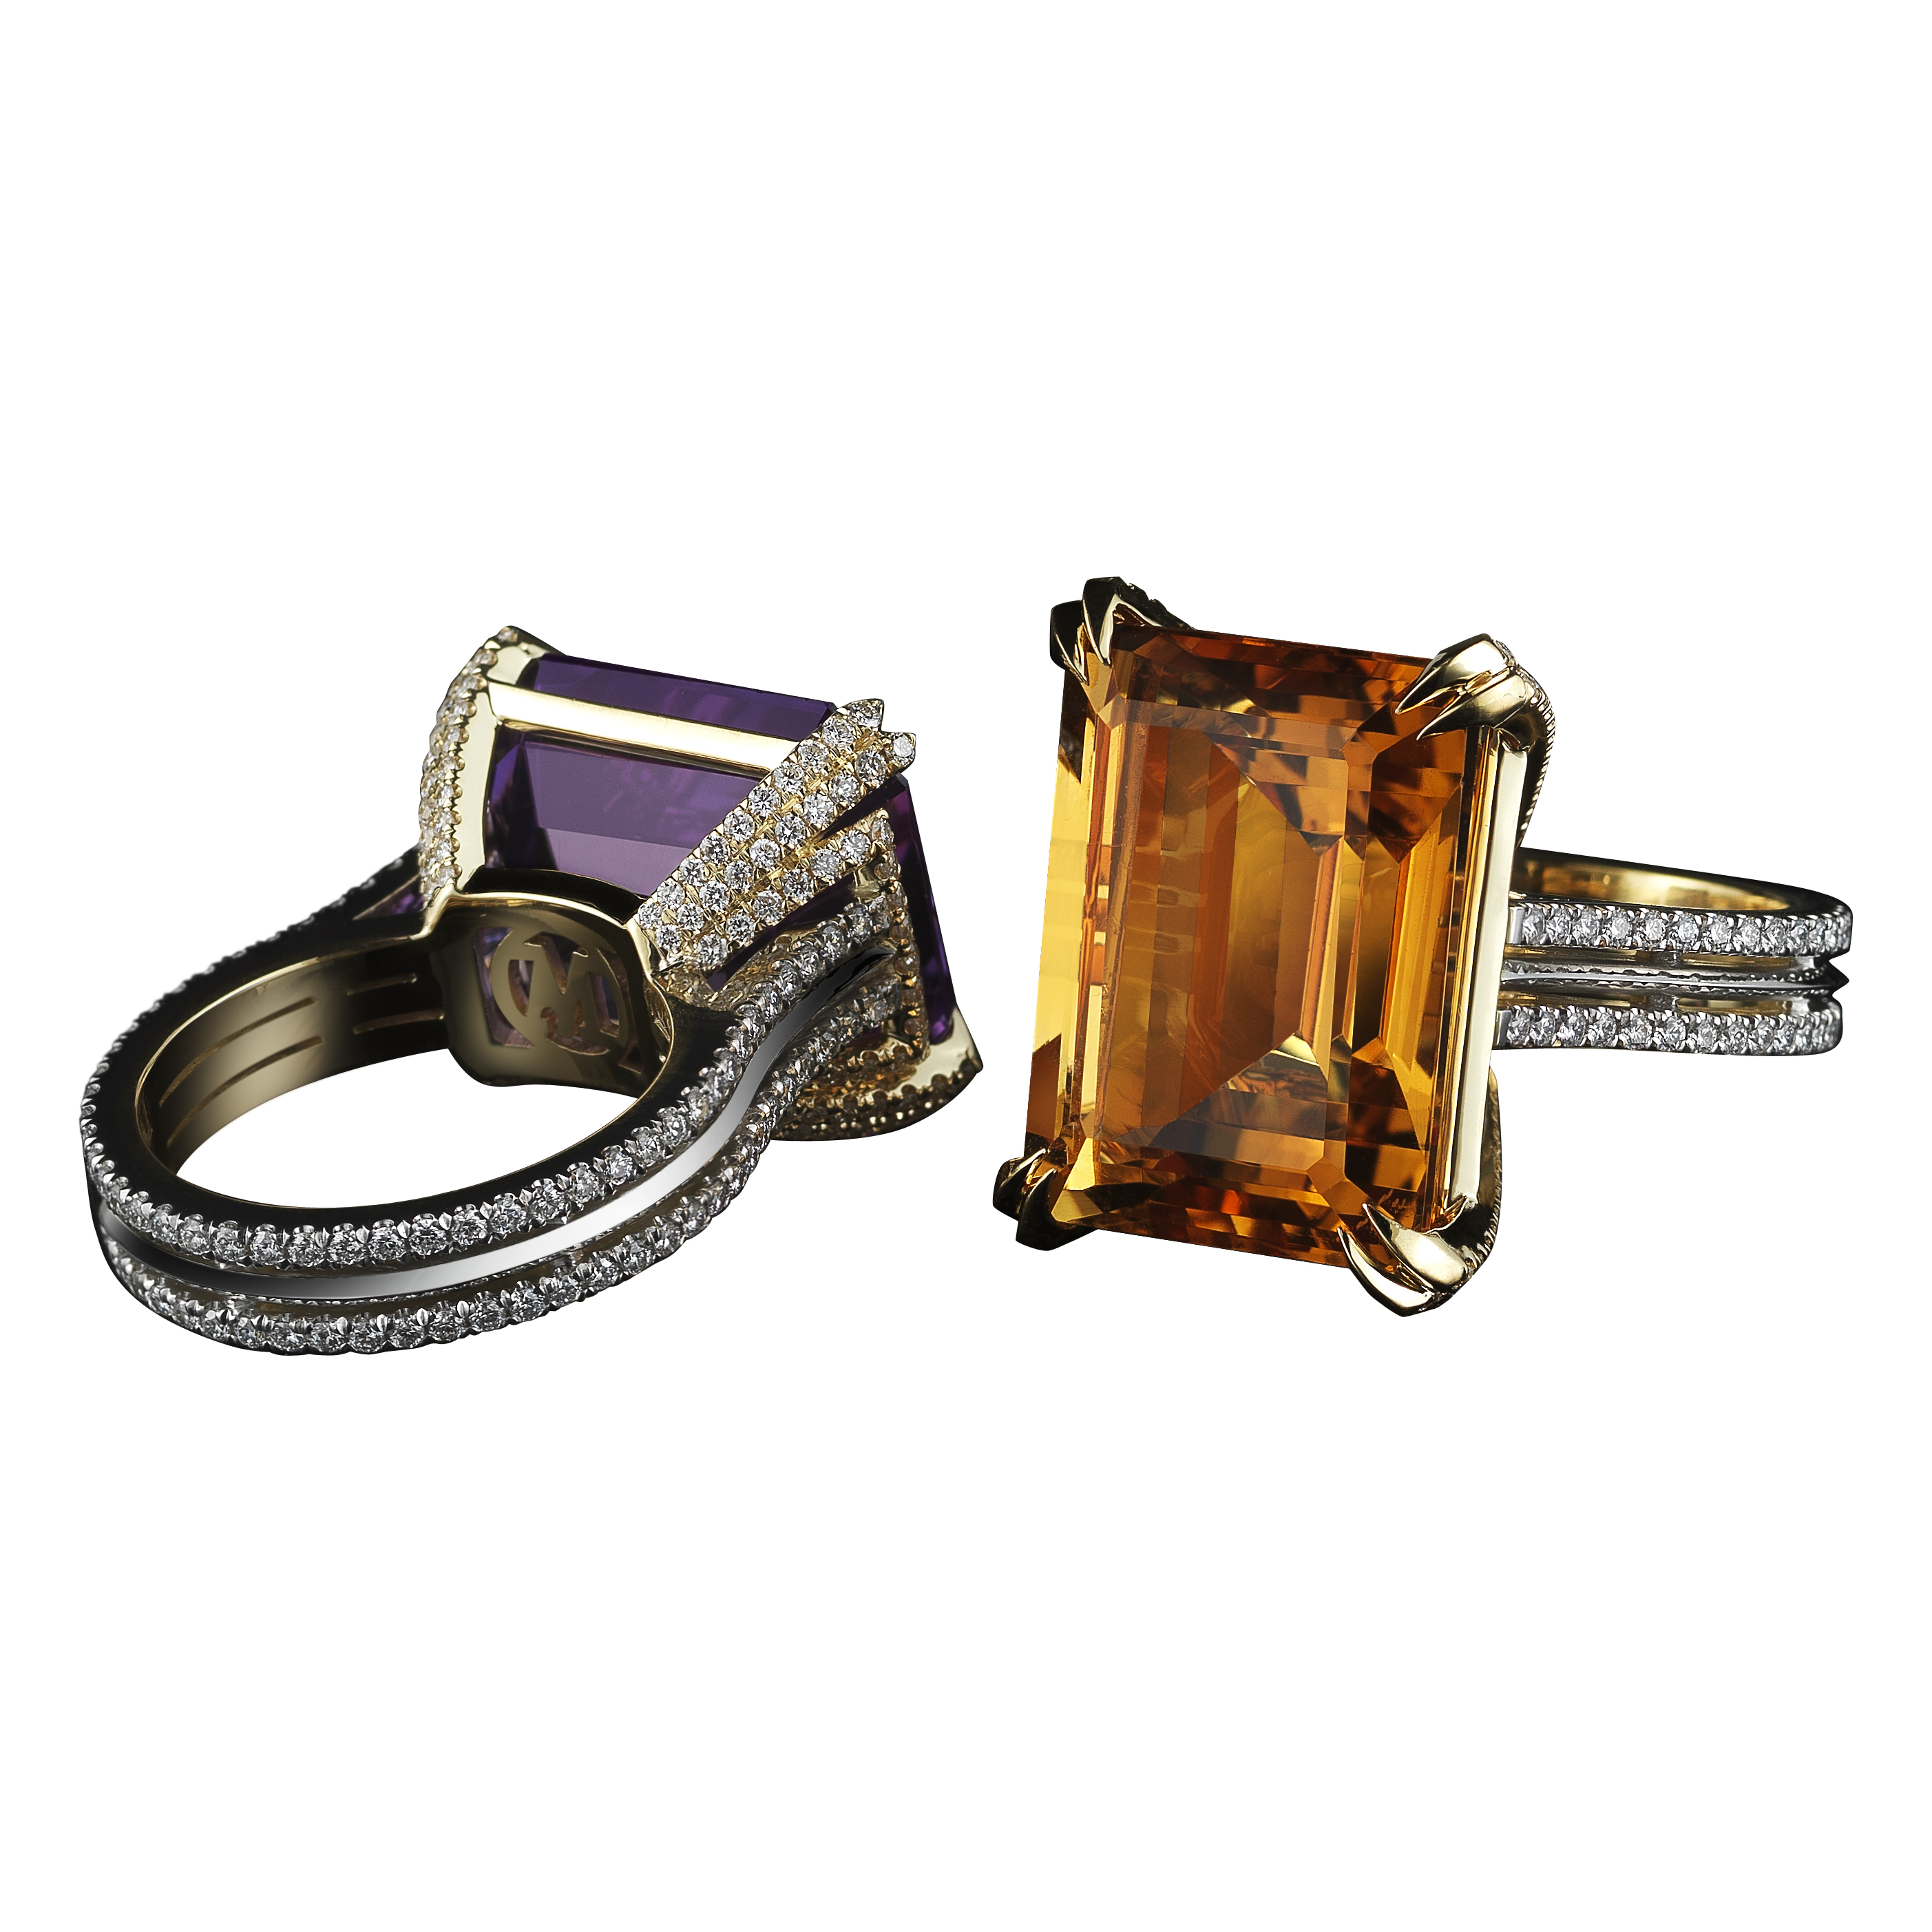 Medi Honey Citrine and Diamond Ring; Medi Purple Amethyst and Diamond Ring.